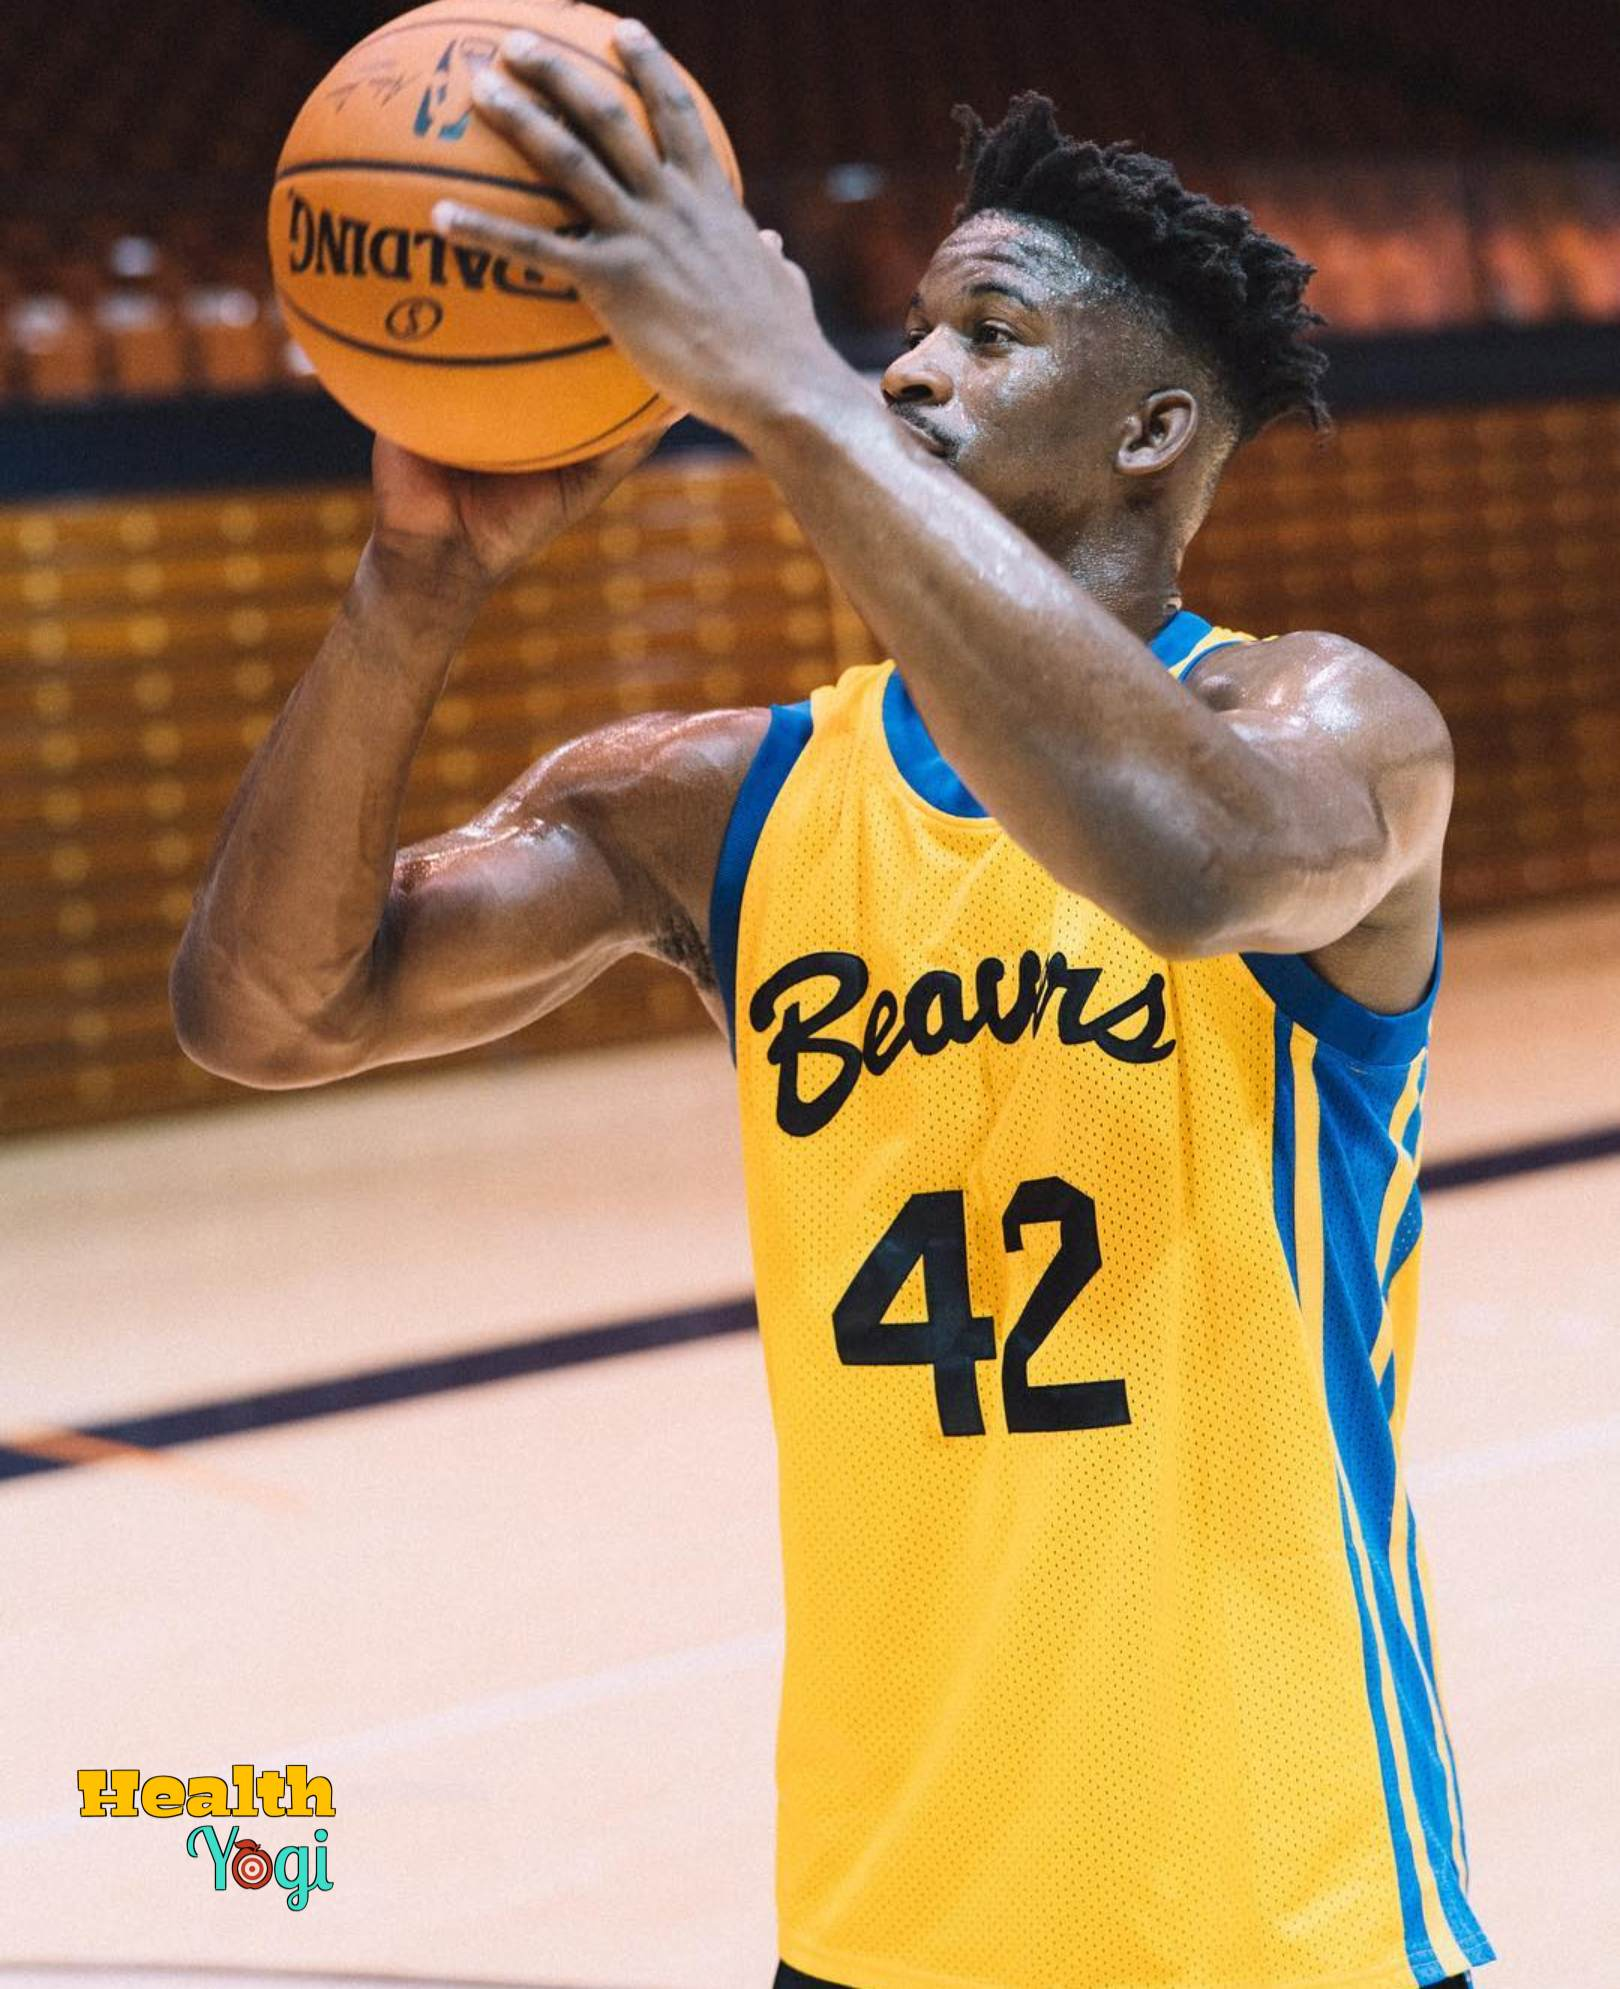 Jimmy Butler Diet Plan and Workout Routine